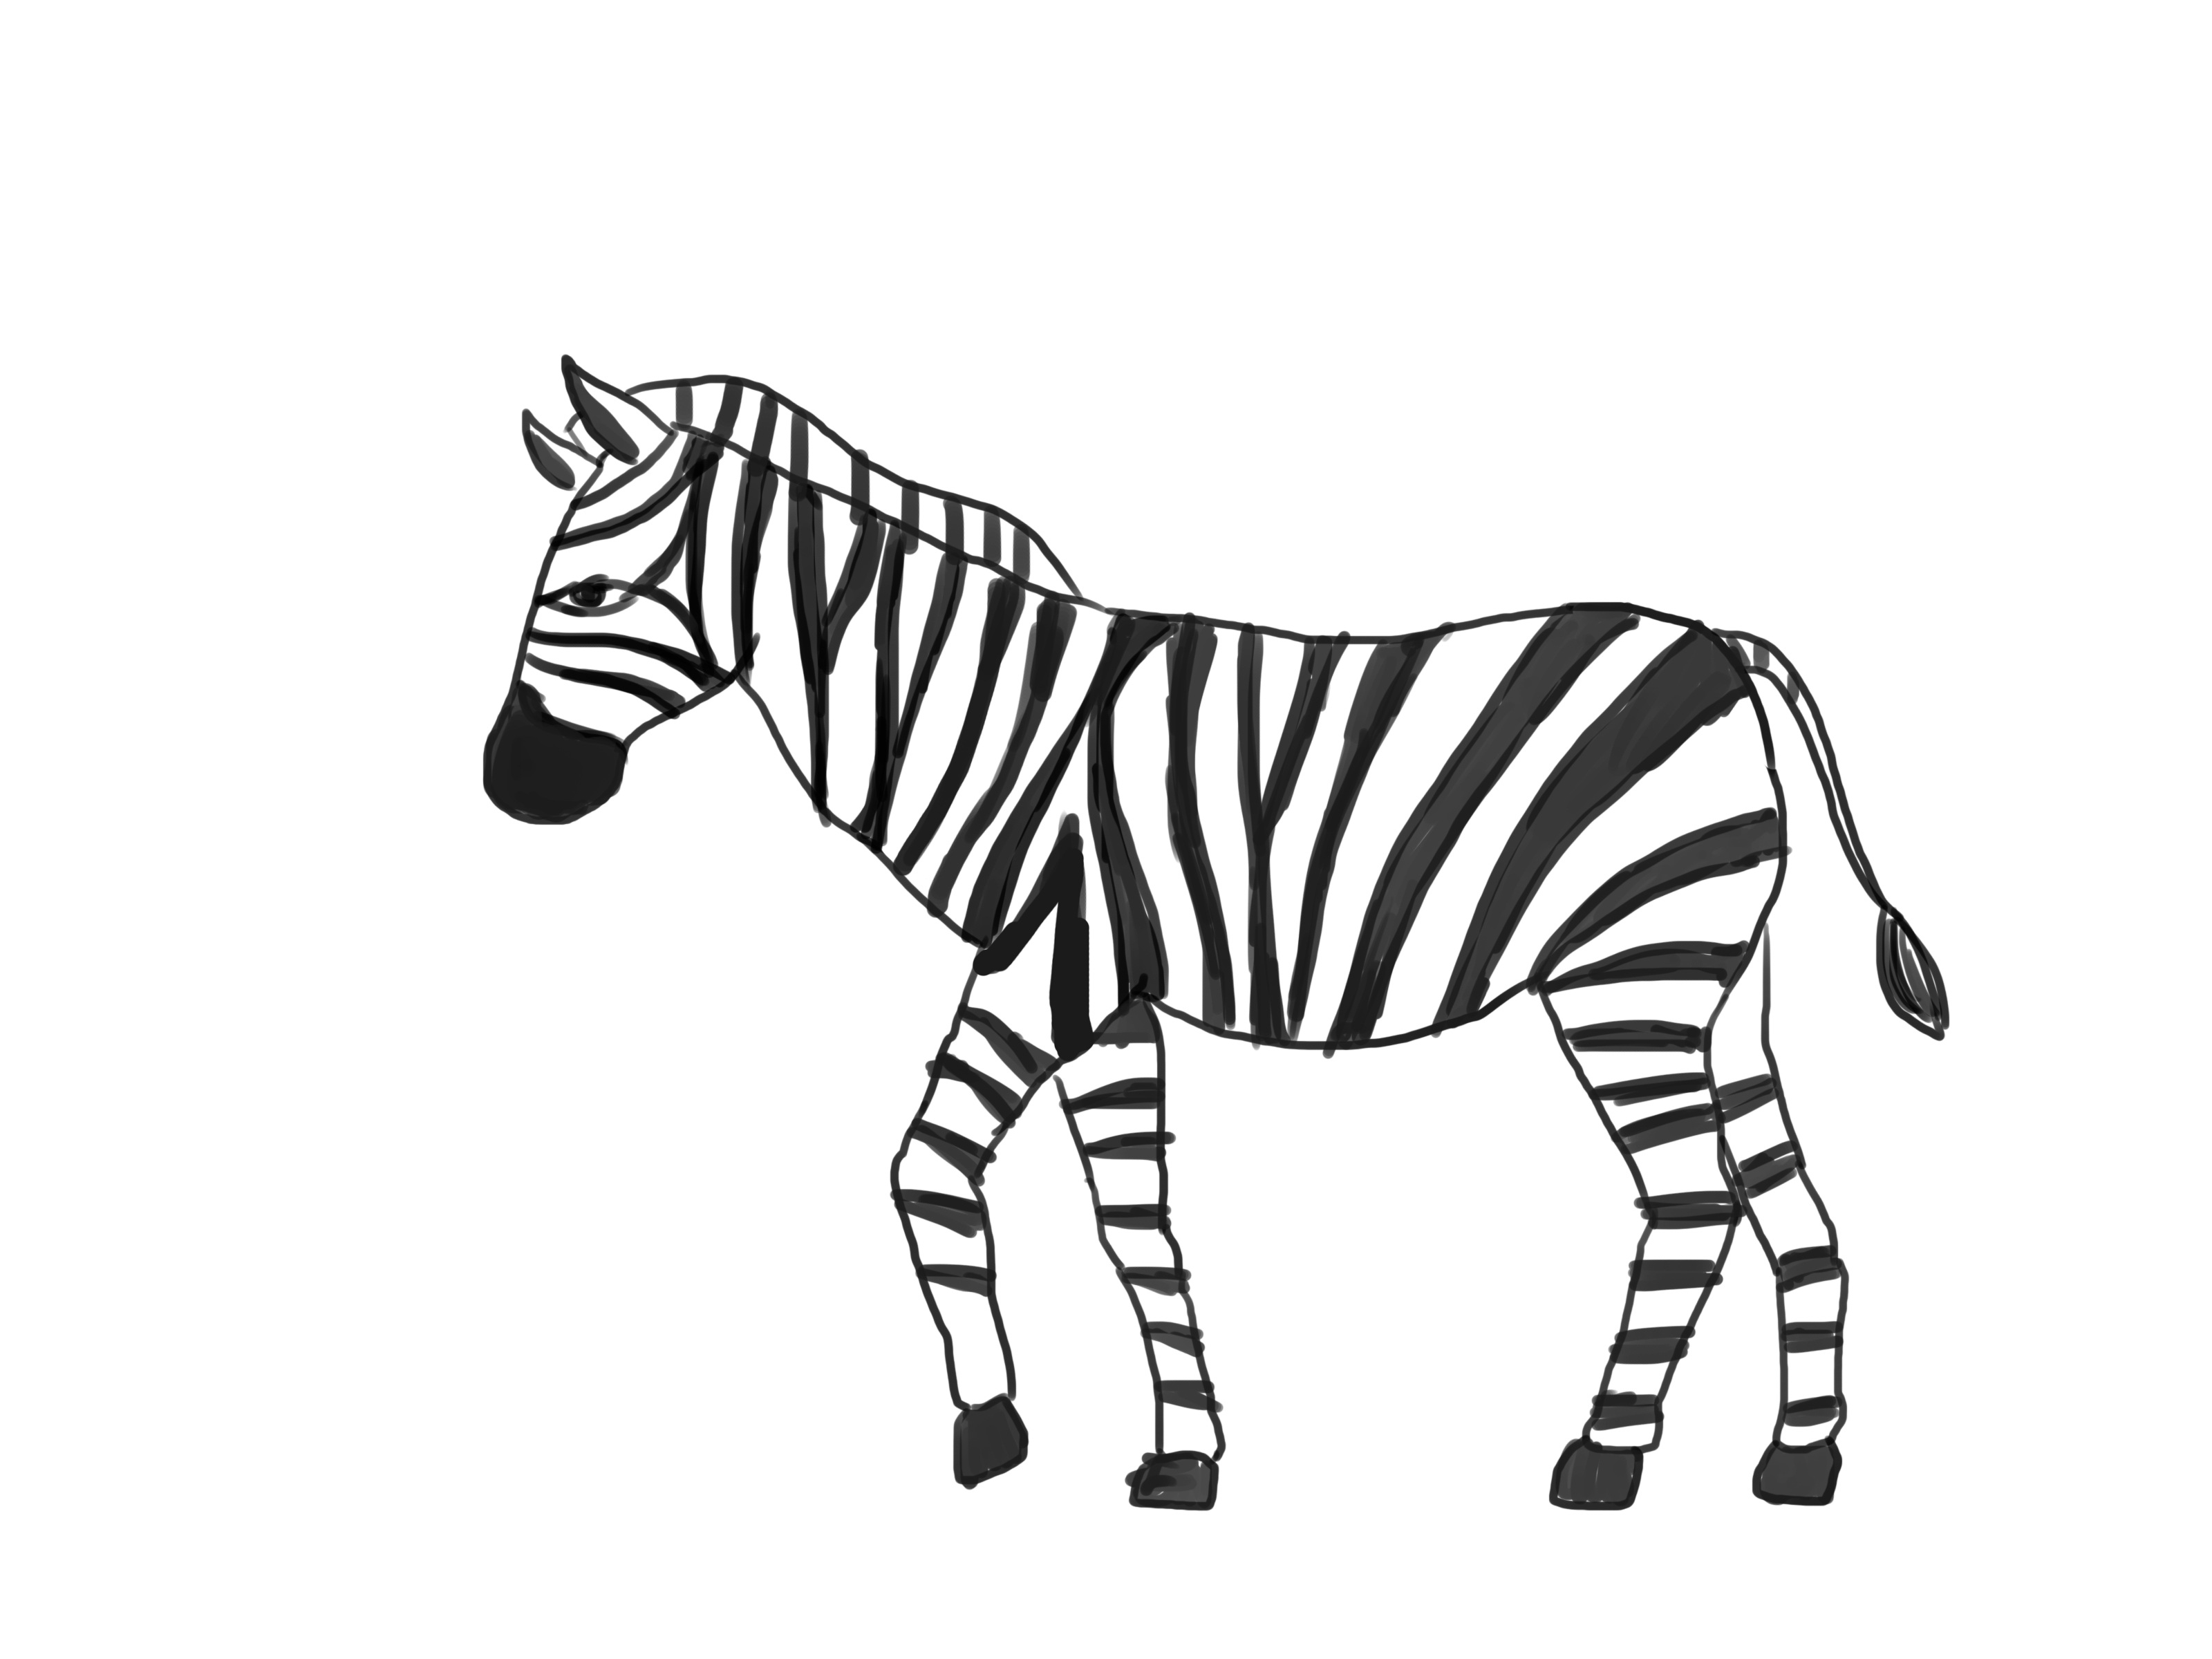 how to draw a zebra step by step learn how to draw a zebra zoo animals step by step step zebra to a draw how step by